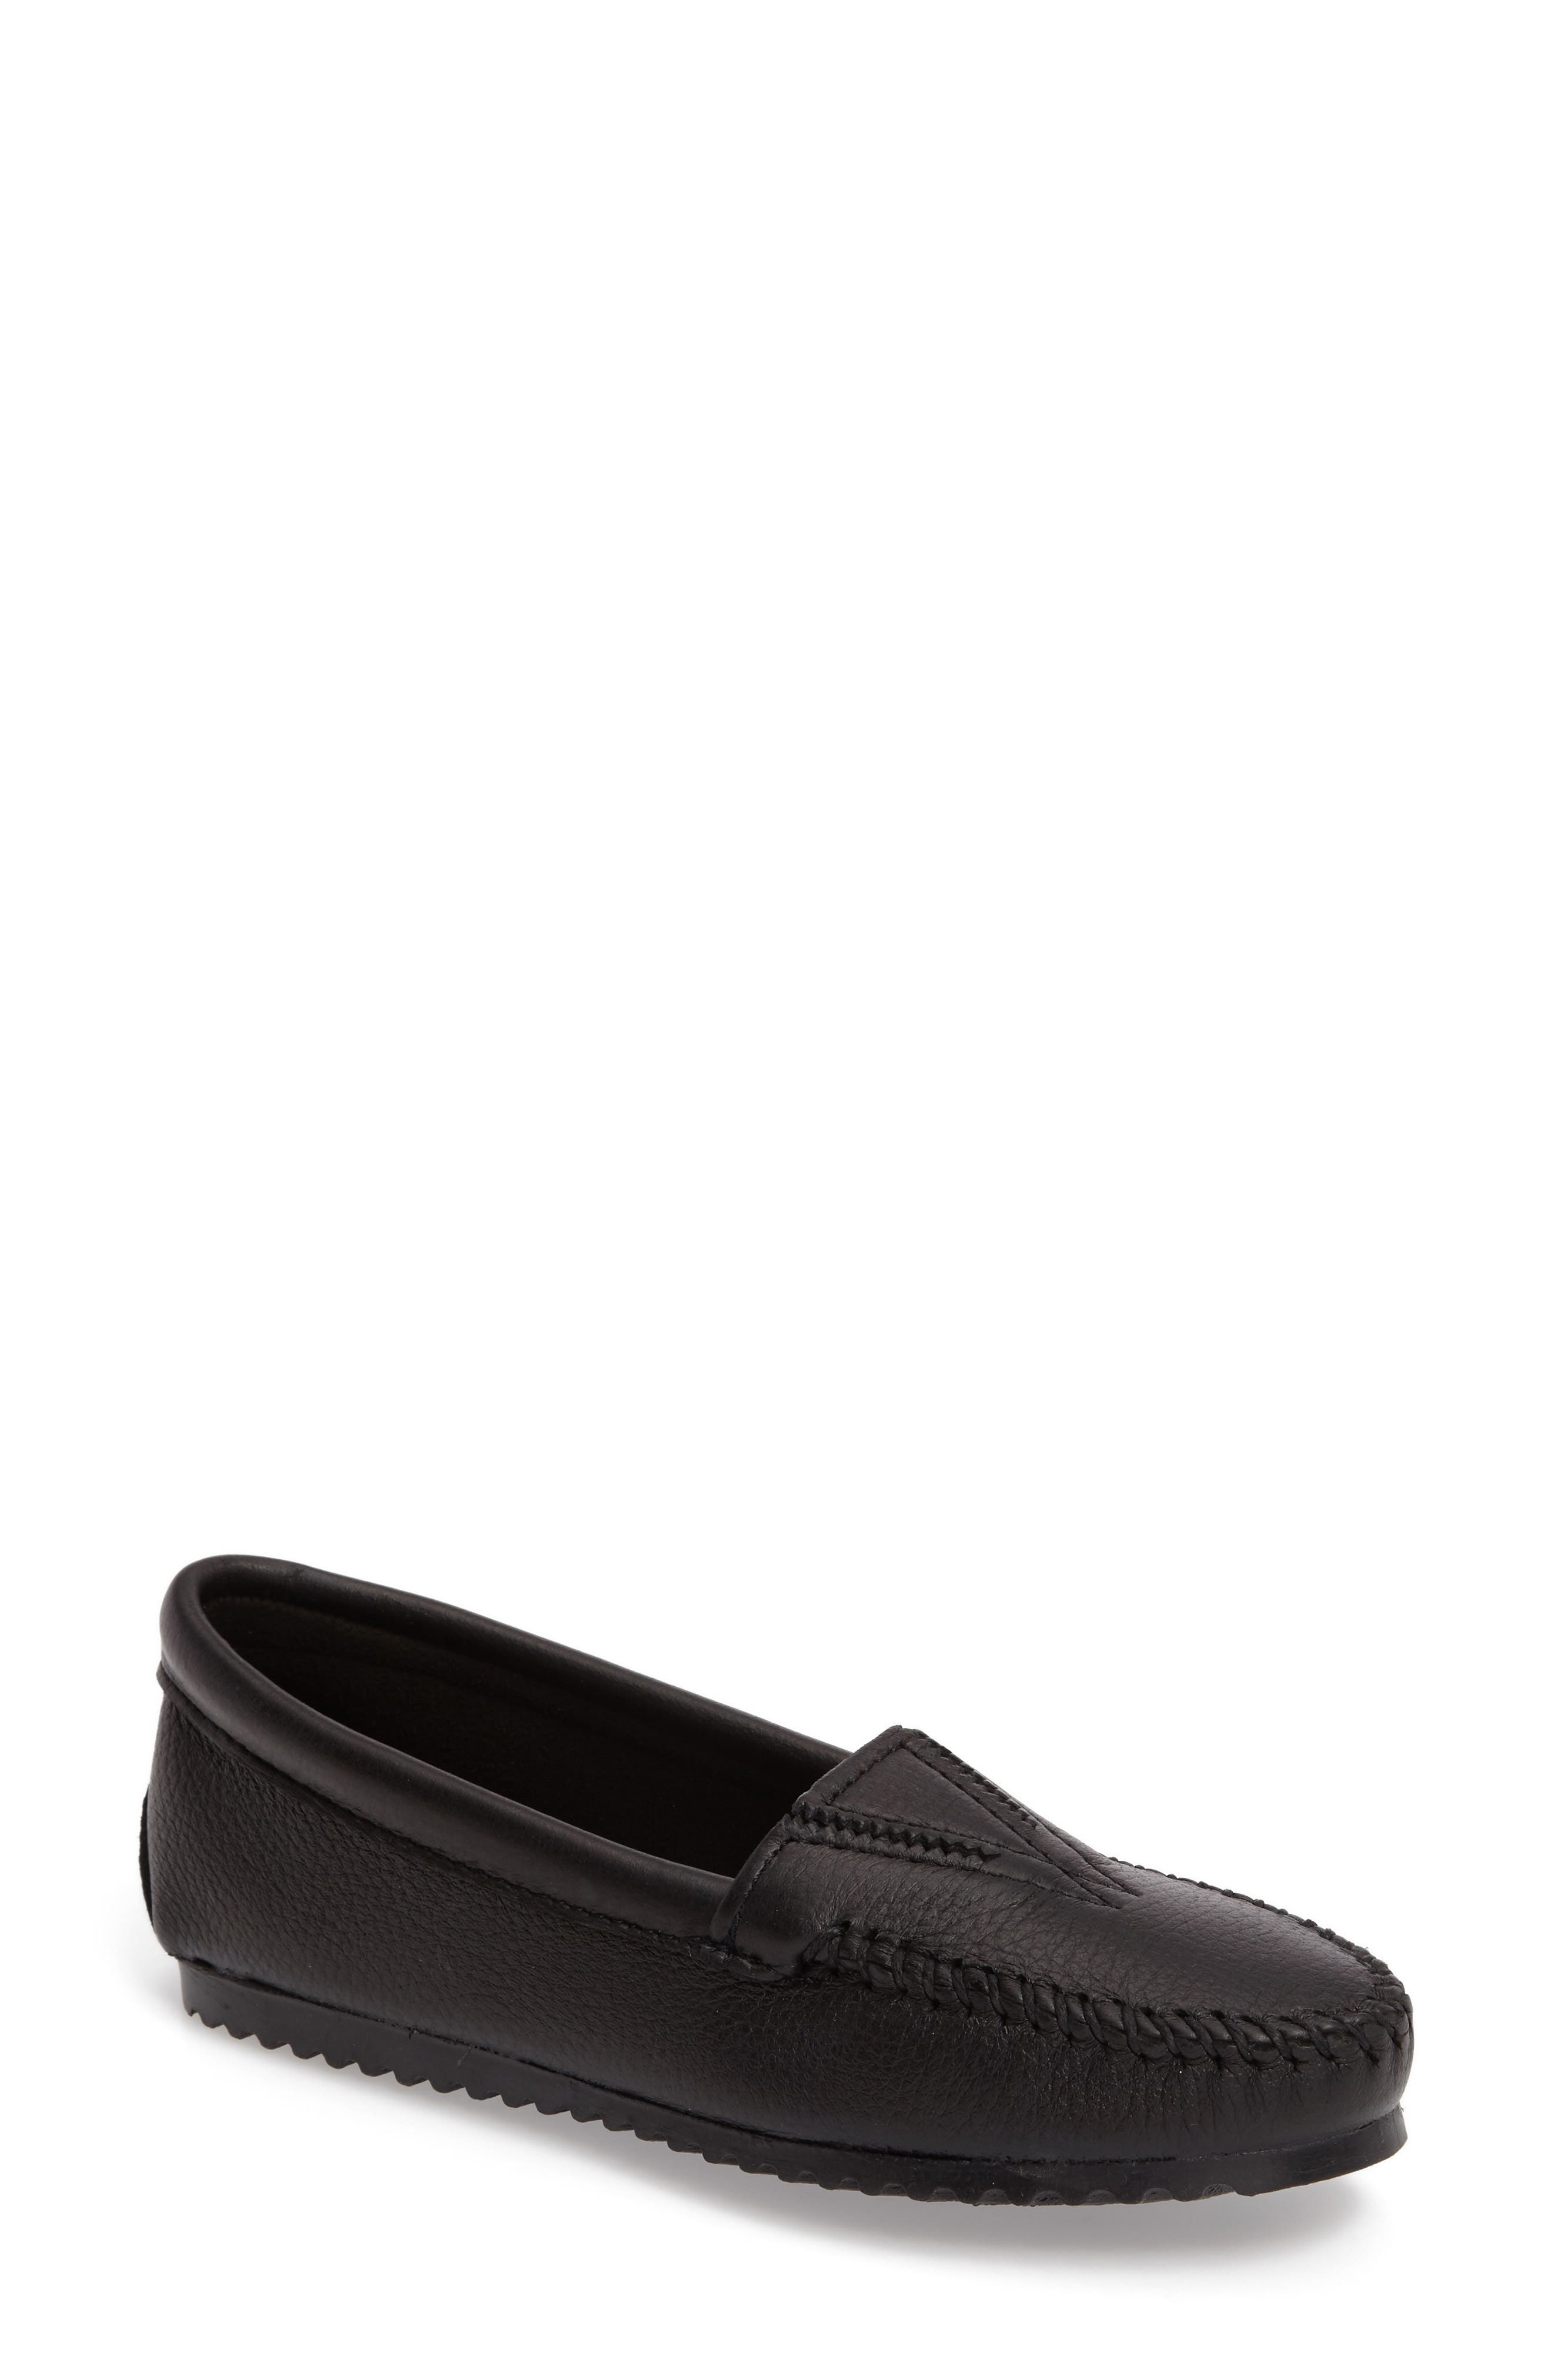 MINNETONKA Moccasin, Main, color, BLACK